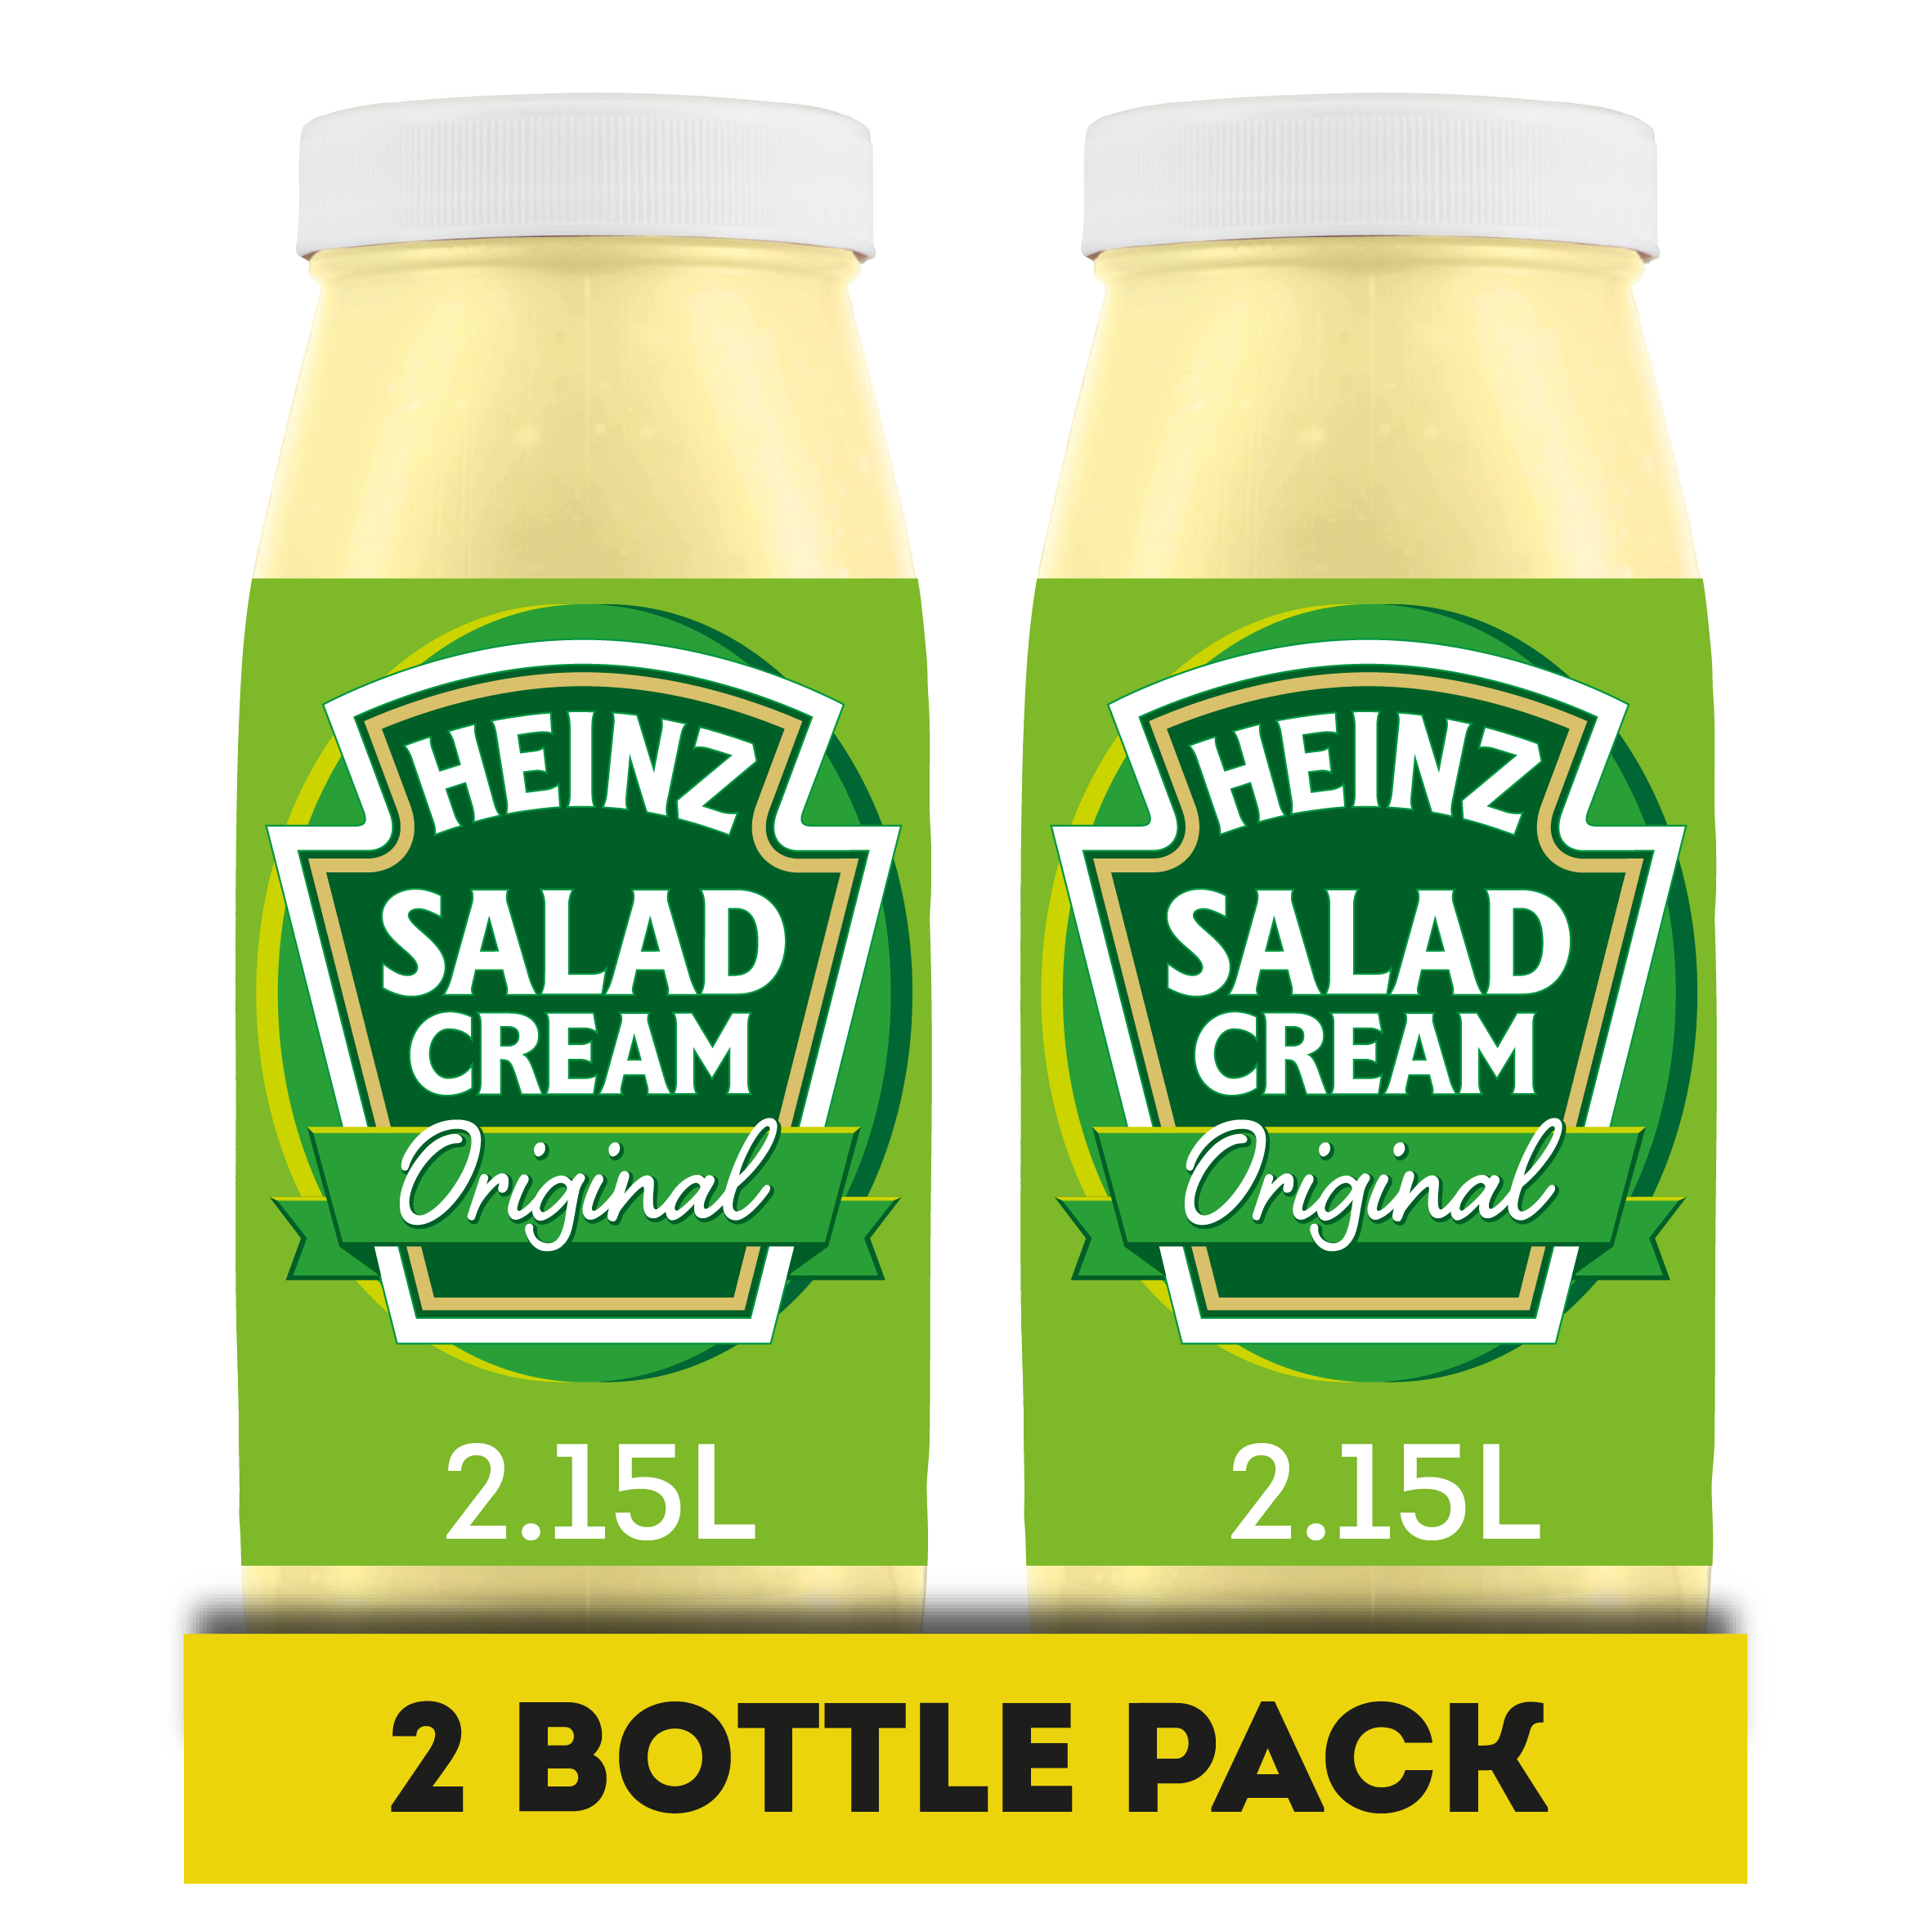 Heinz Salad Cream 2.15L Jars